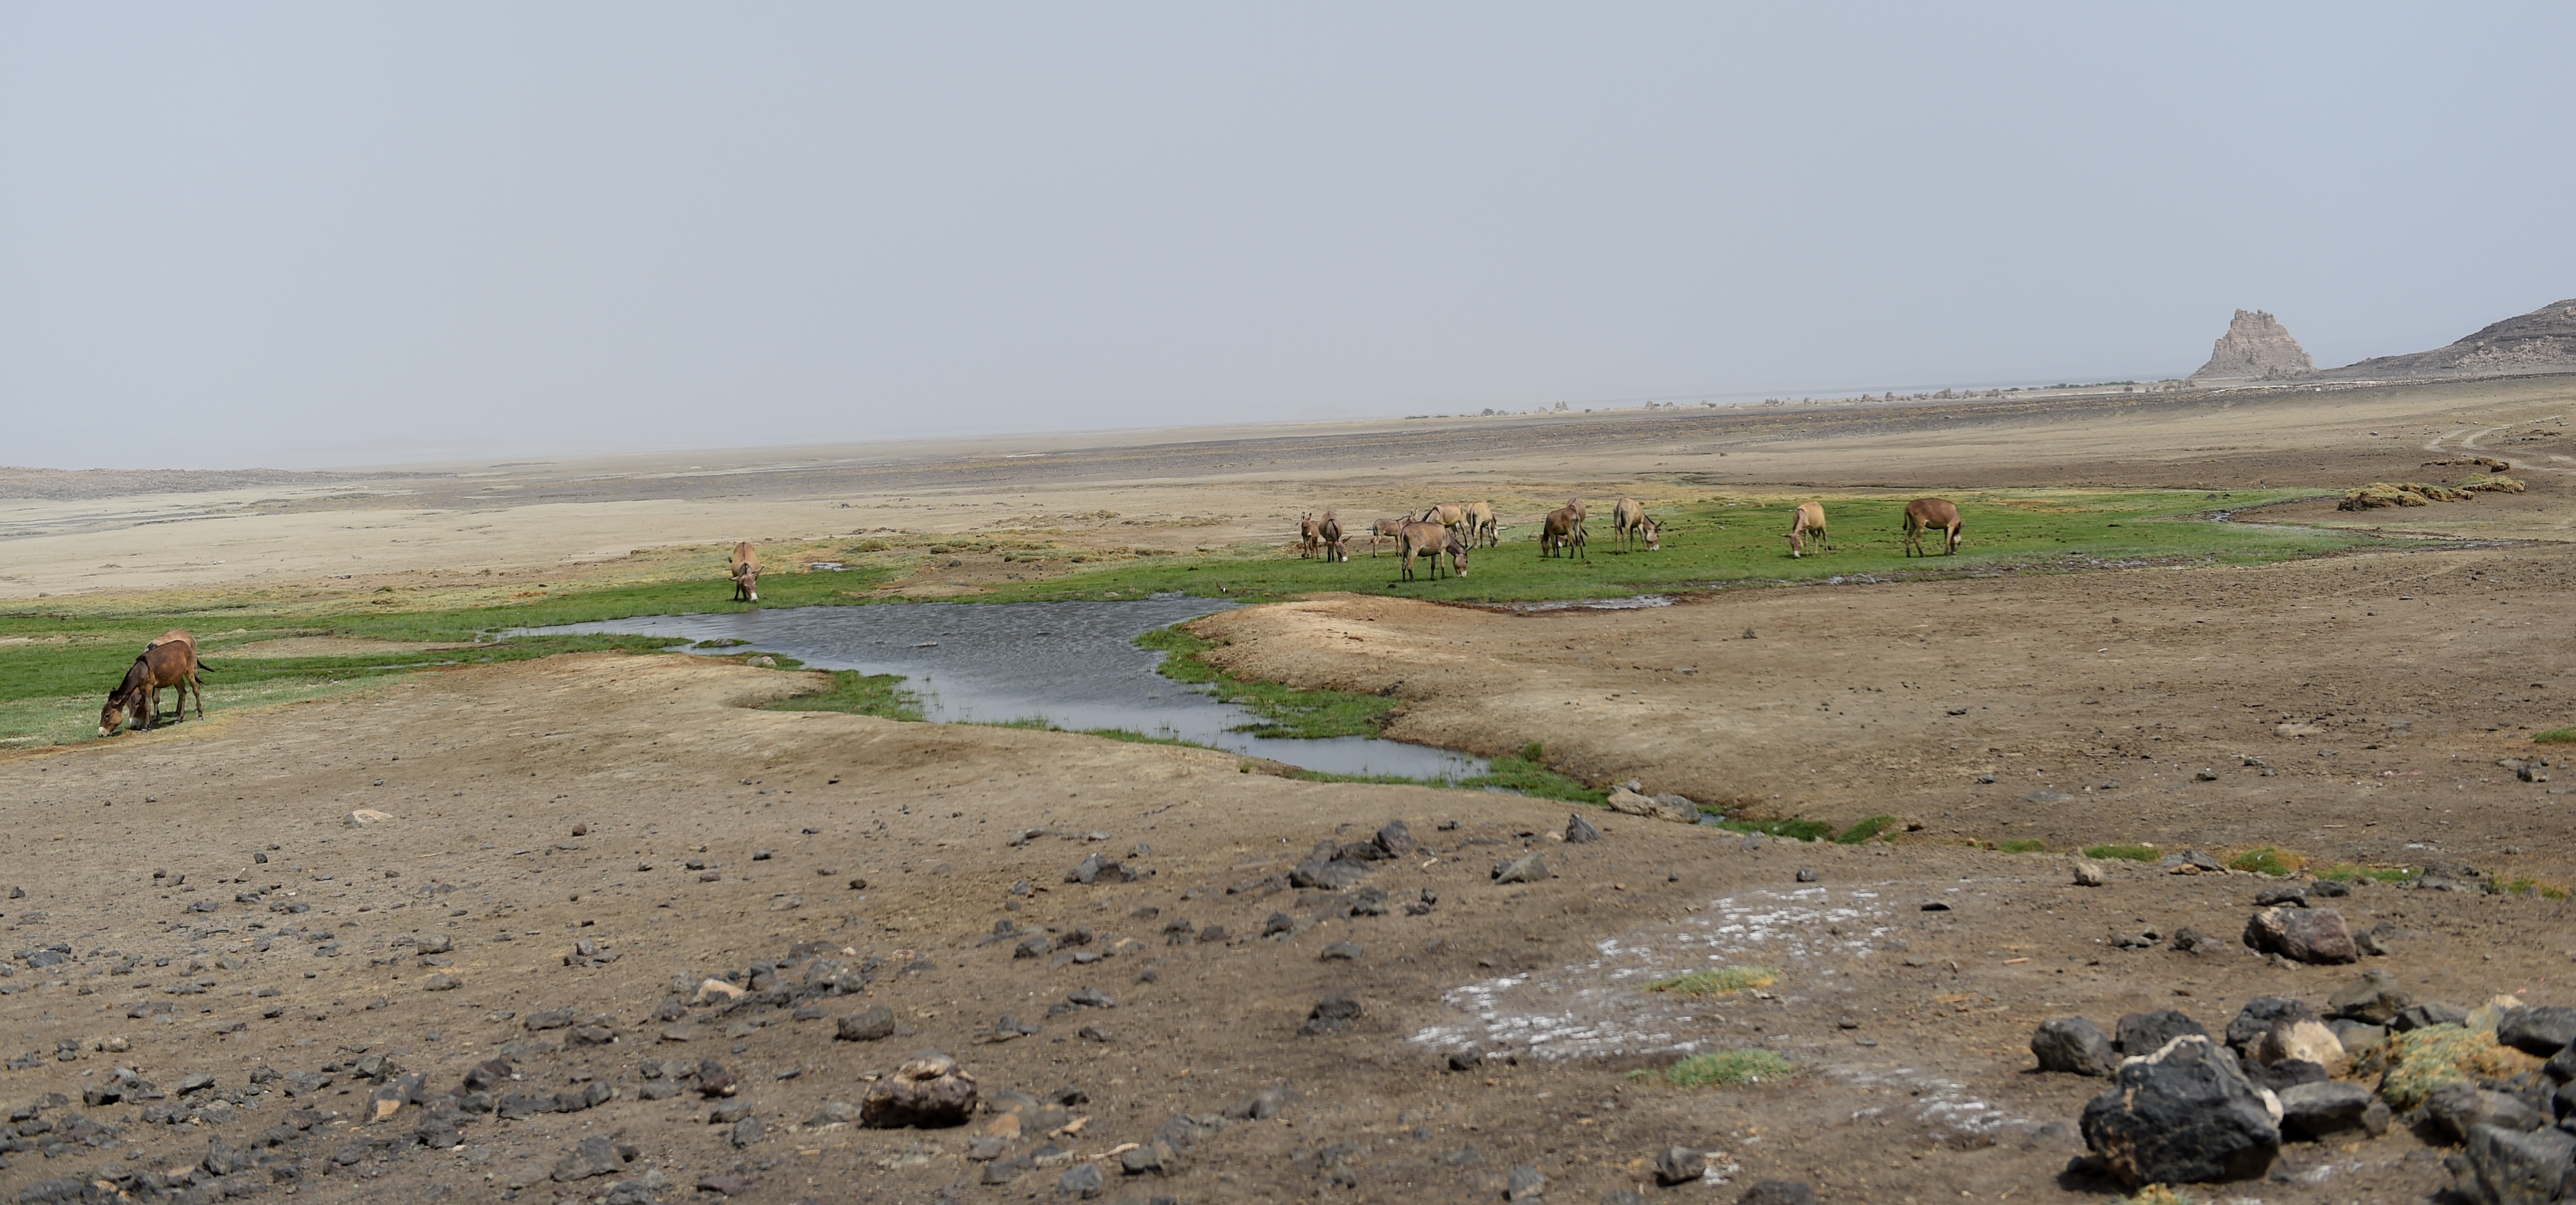 Donkeys eat grass at a creek near Lac Abbé, Djibouti, May 20, 2015. It is the only water source found for miles within the desolate area. Members of U.S. Army 404th Civil Affairs Battalion, assigned to Combined Joint Task Force- Horn of Africa, traveled to Lac Abbé to learn about the arid lake's utility to the nearby village since the reoccurring droughts. (U.S. Air Force photo by Senior Airman Nesha Humes)